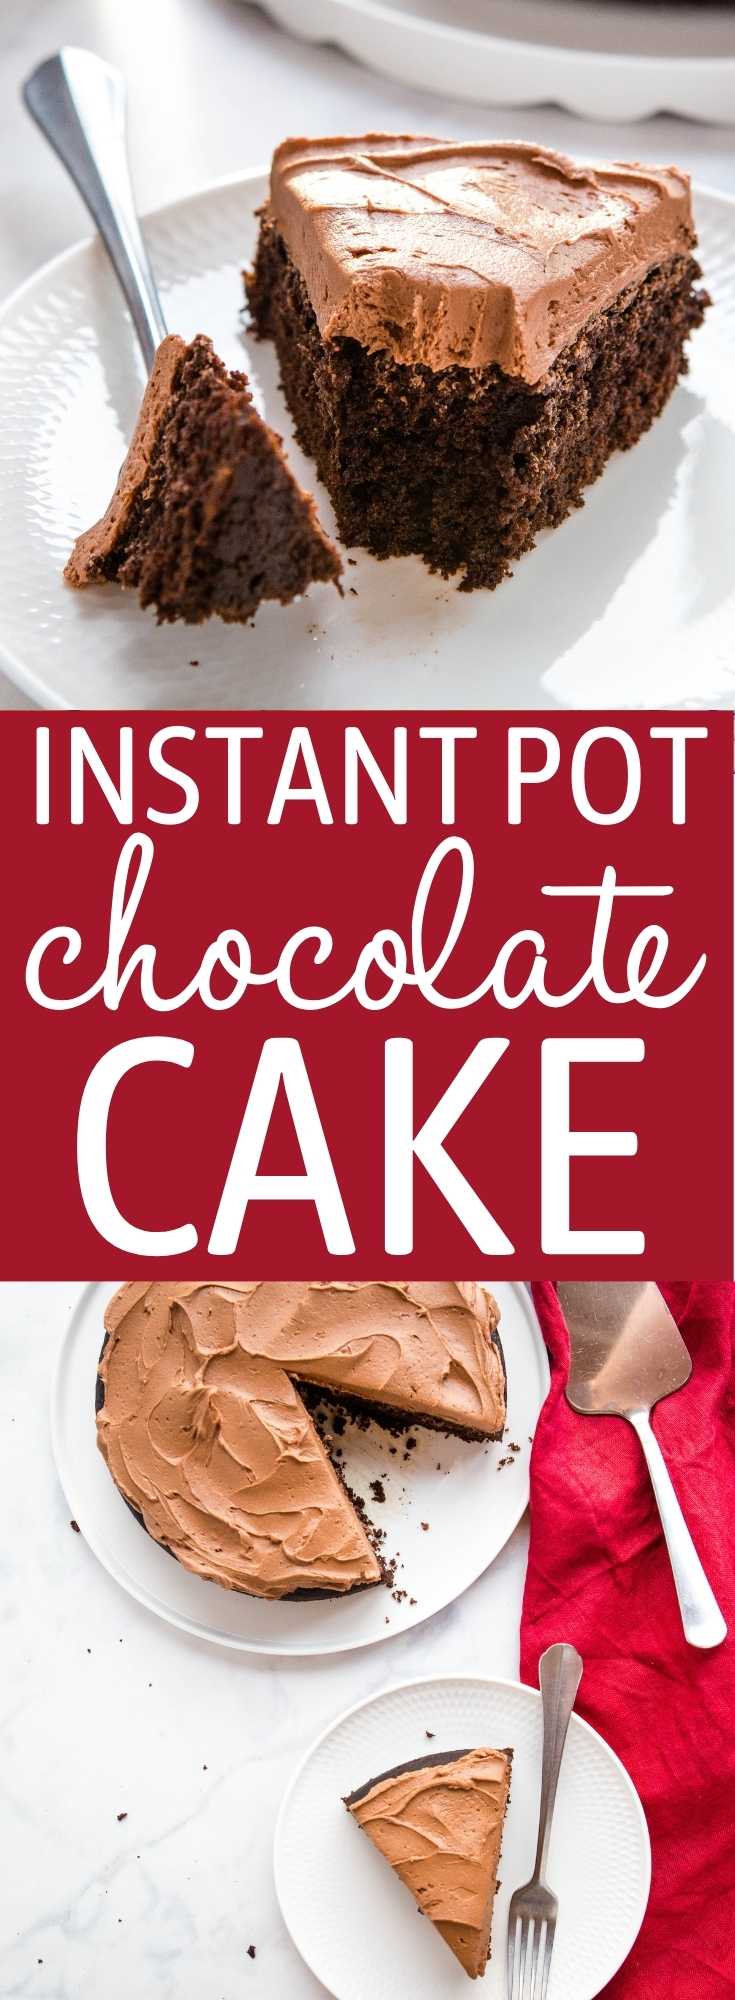 This Easy Instant Pot Chocolate Cake is ultra moist and chocolatey, with the perfect tender crumb, and easy to make in the Instant Pot with basic ingredients. Recipe from thebusybaker.ca! #cake #chocolatecake #instapot #pressurecooker #dessert #instantpotcake #easydessert #instantpotbaking #instantpotdessert via @busybakerblog